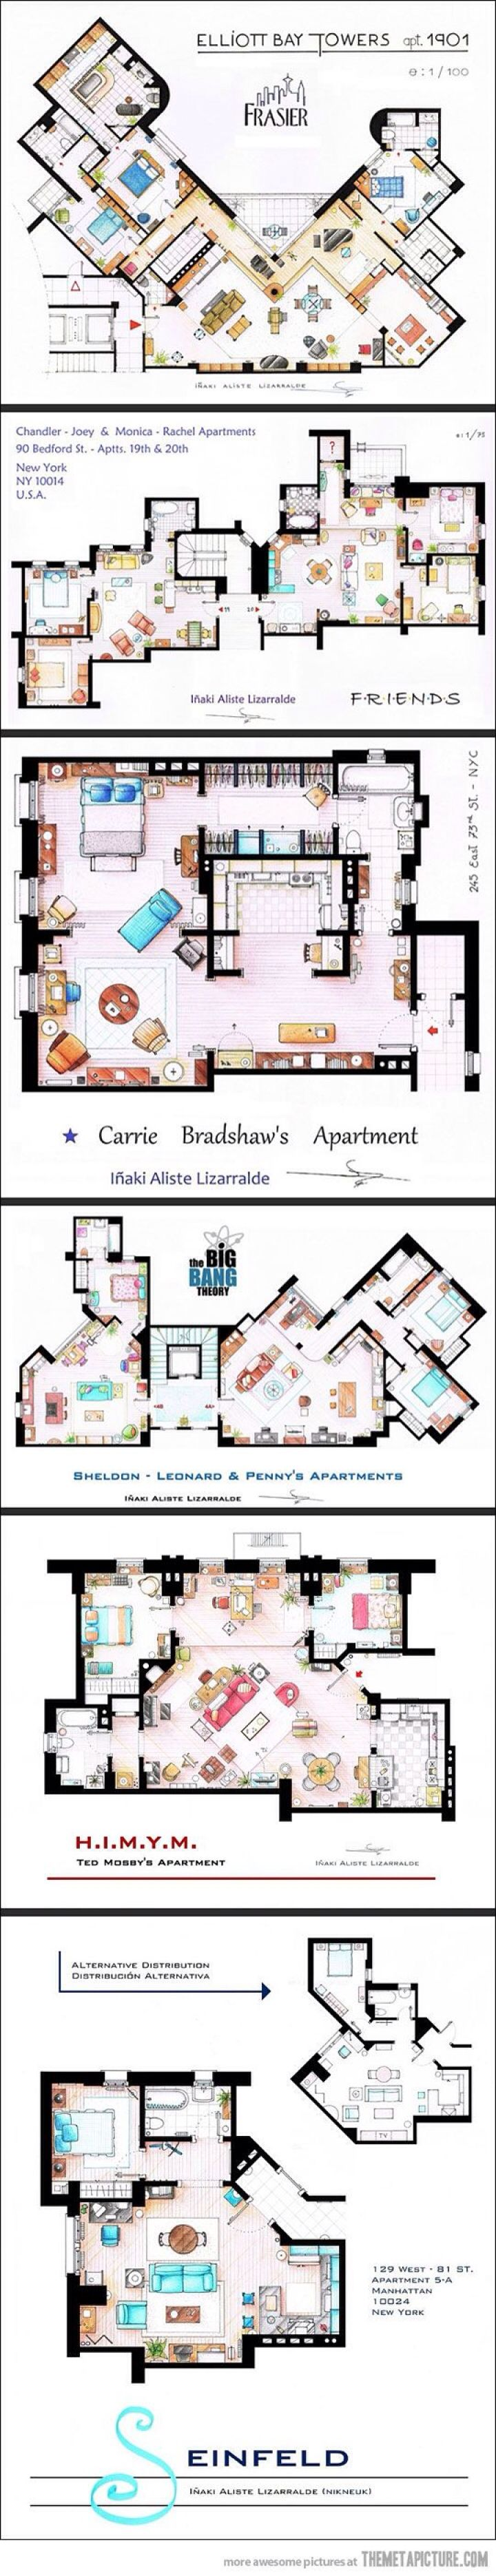 22 best emergency department images on pinterest emergency tv show floorplans